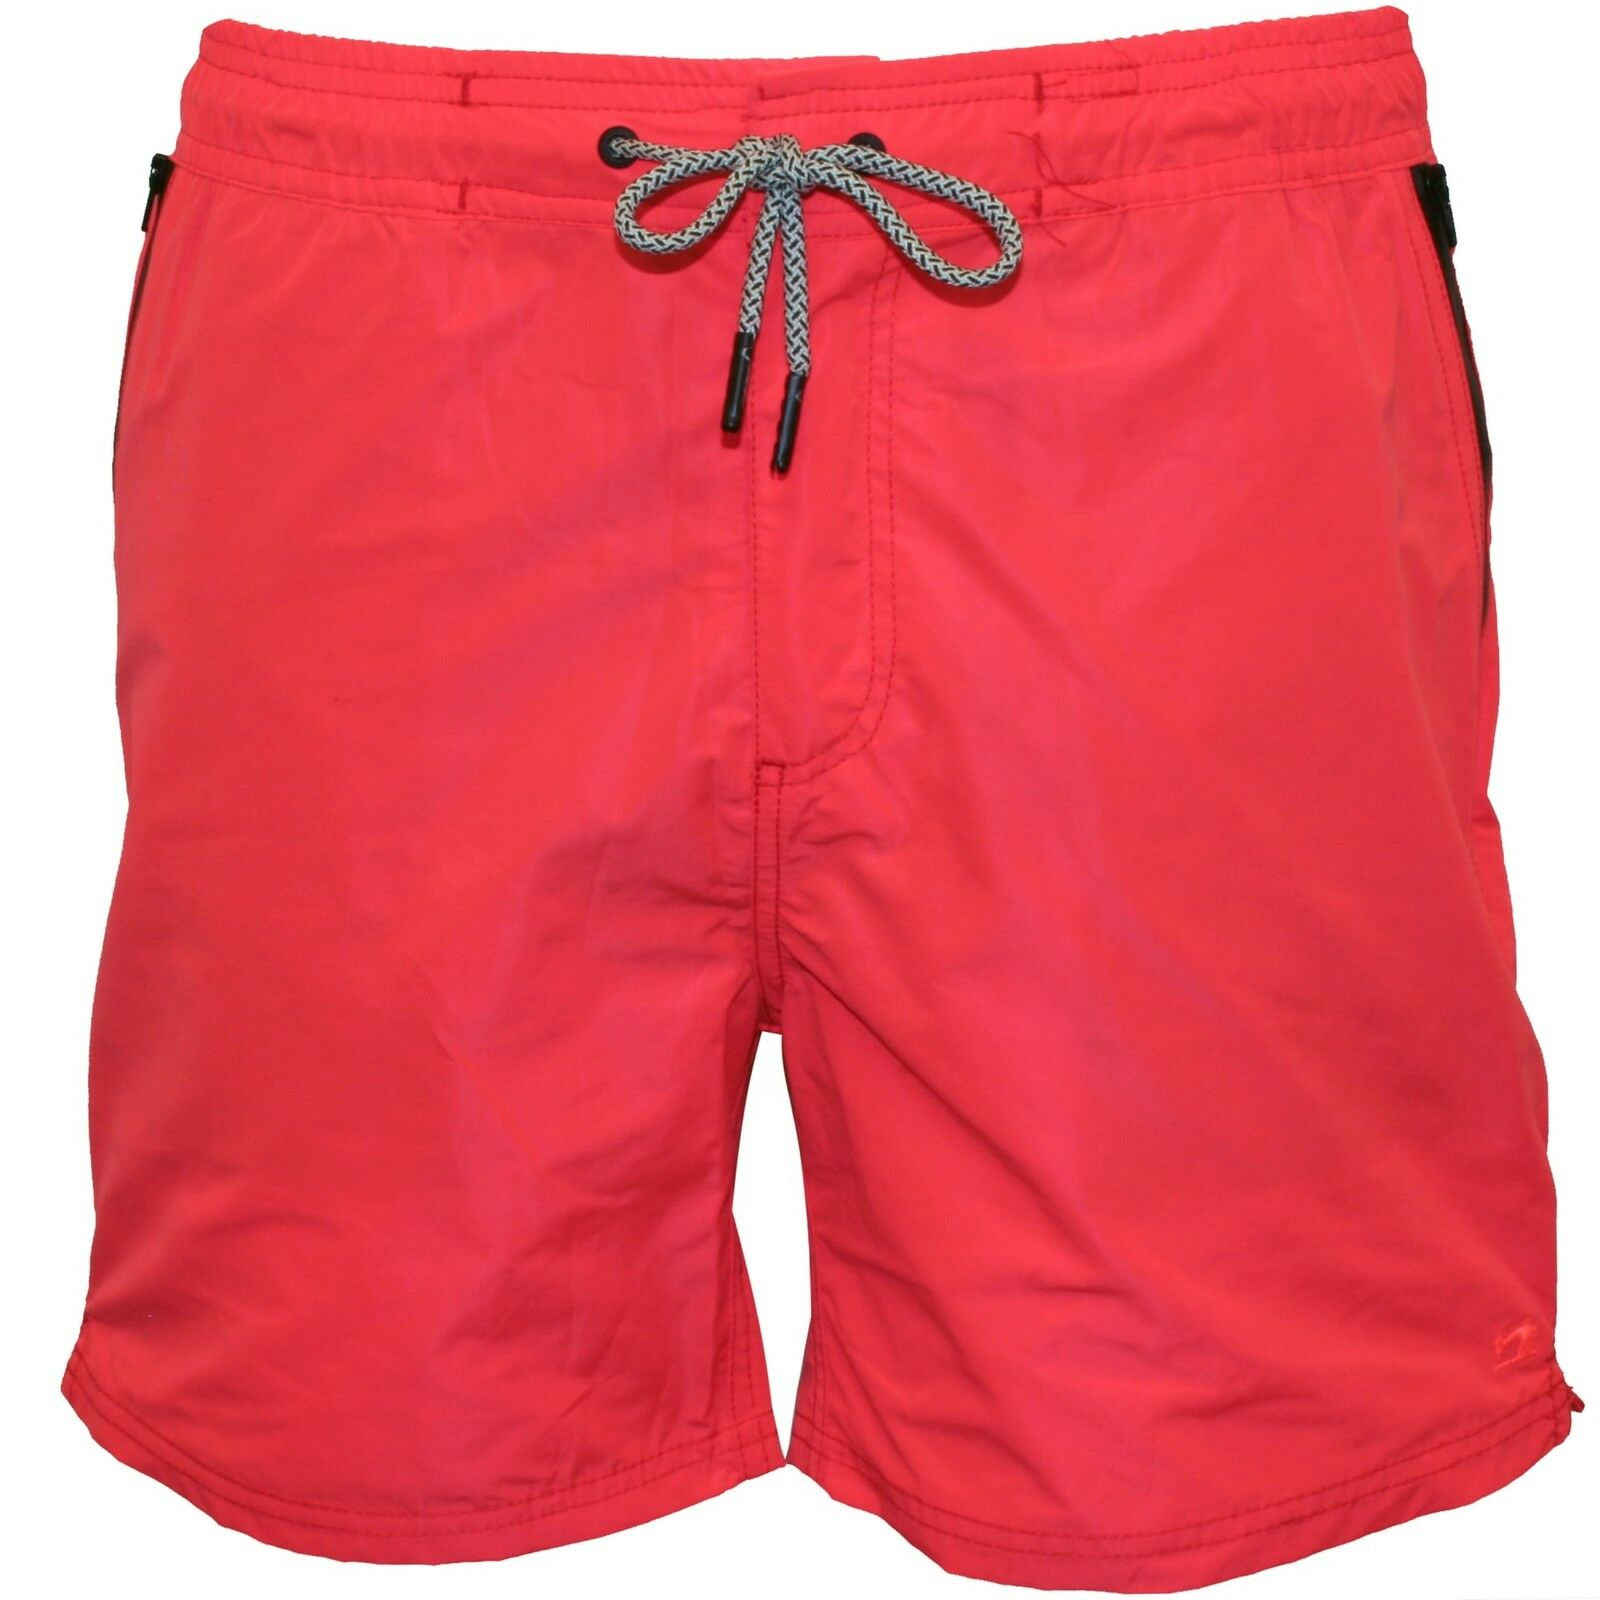 Scotch & Soda Classic Two-Tone Men's Swim Shorts, Coral with navy